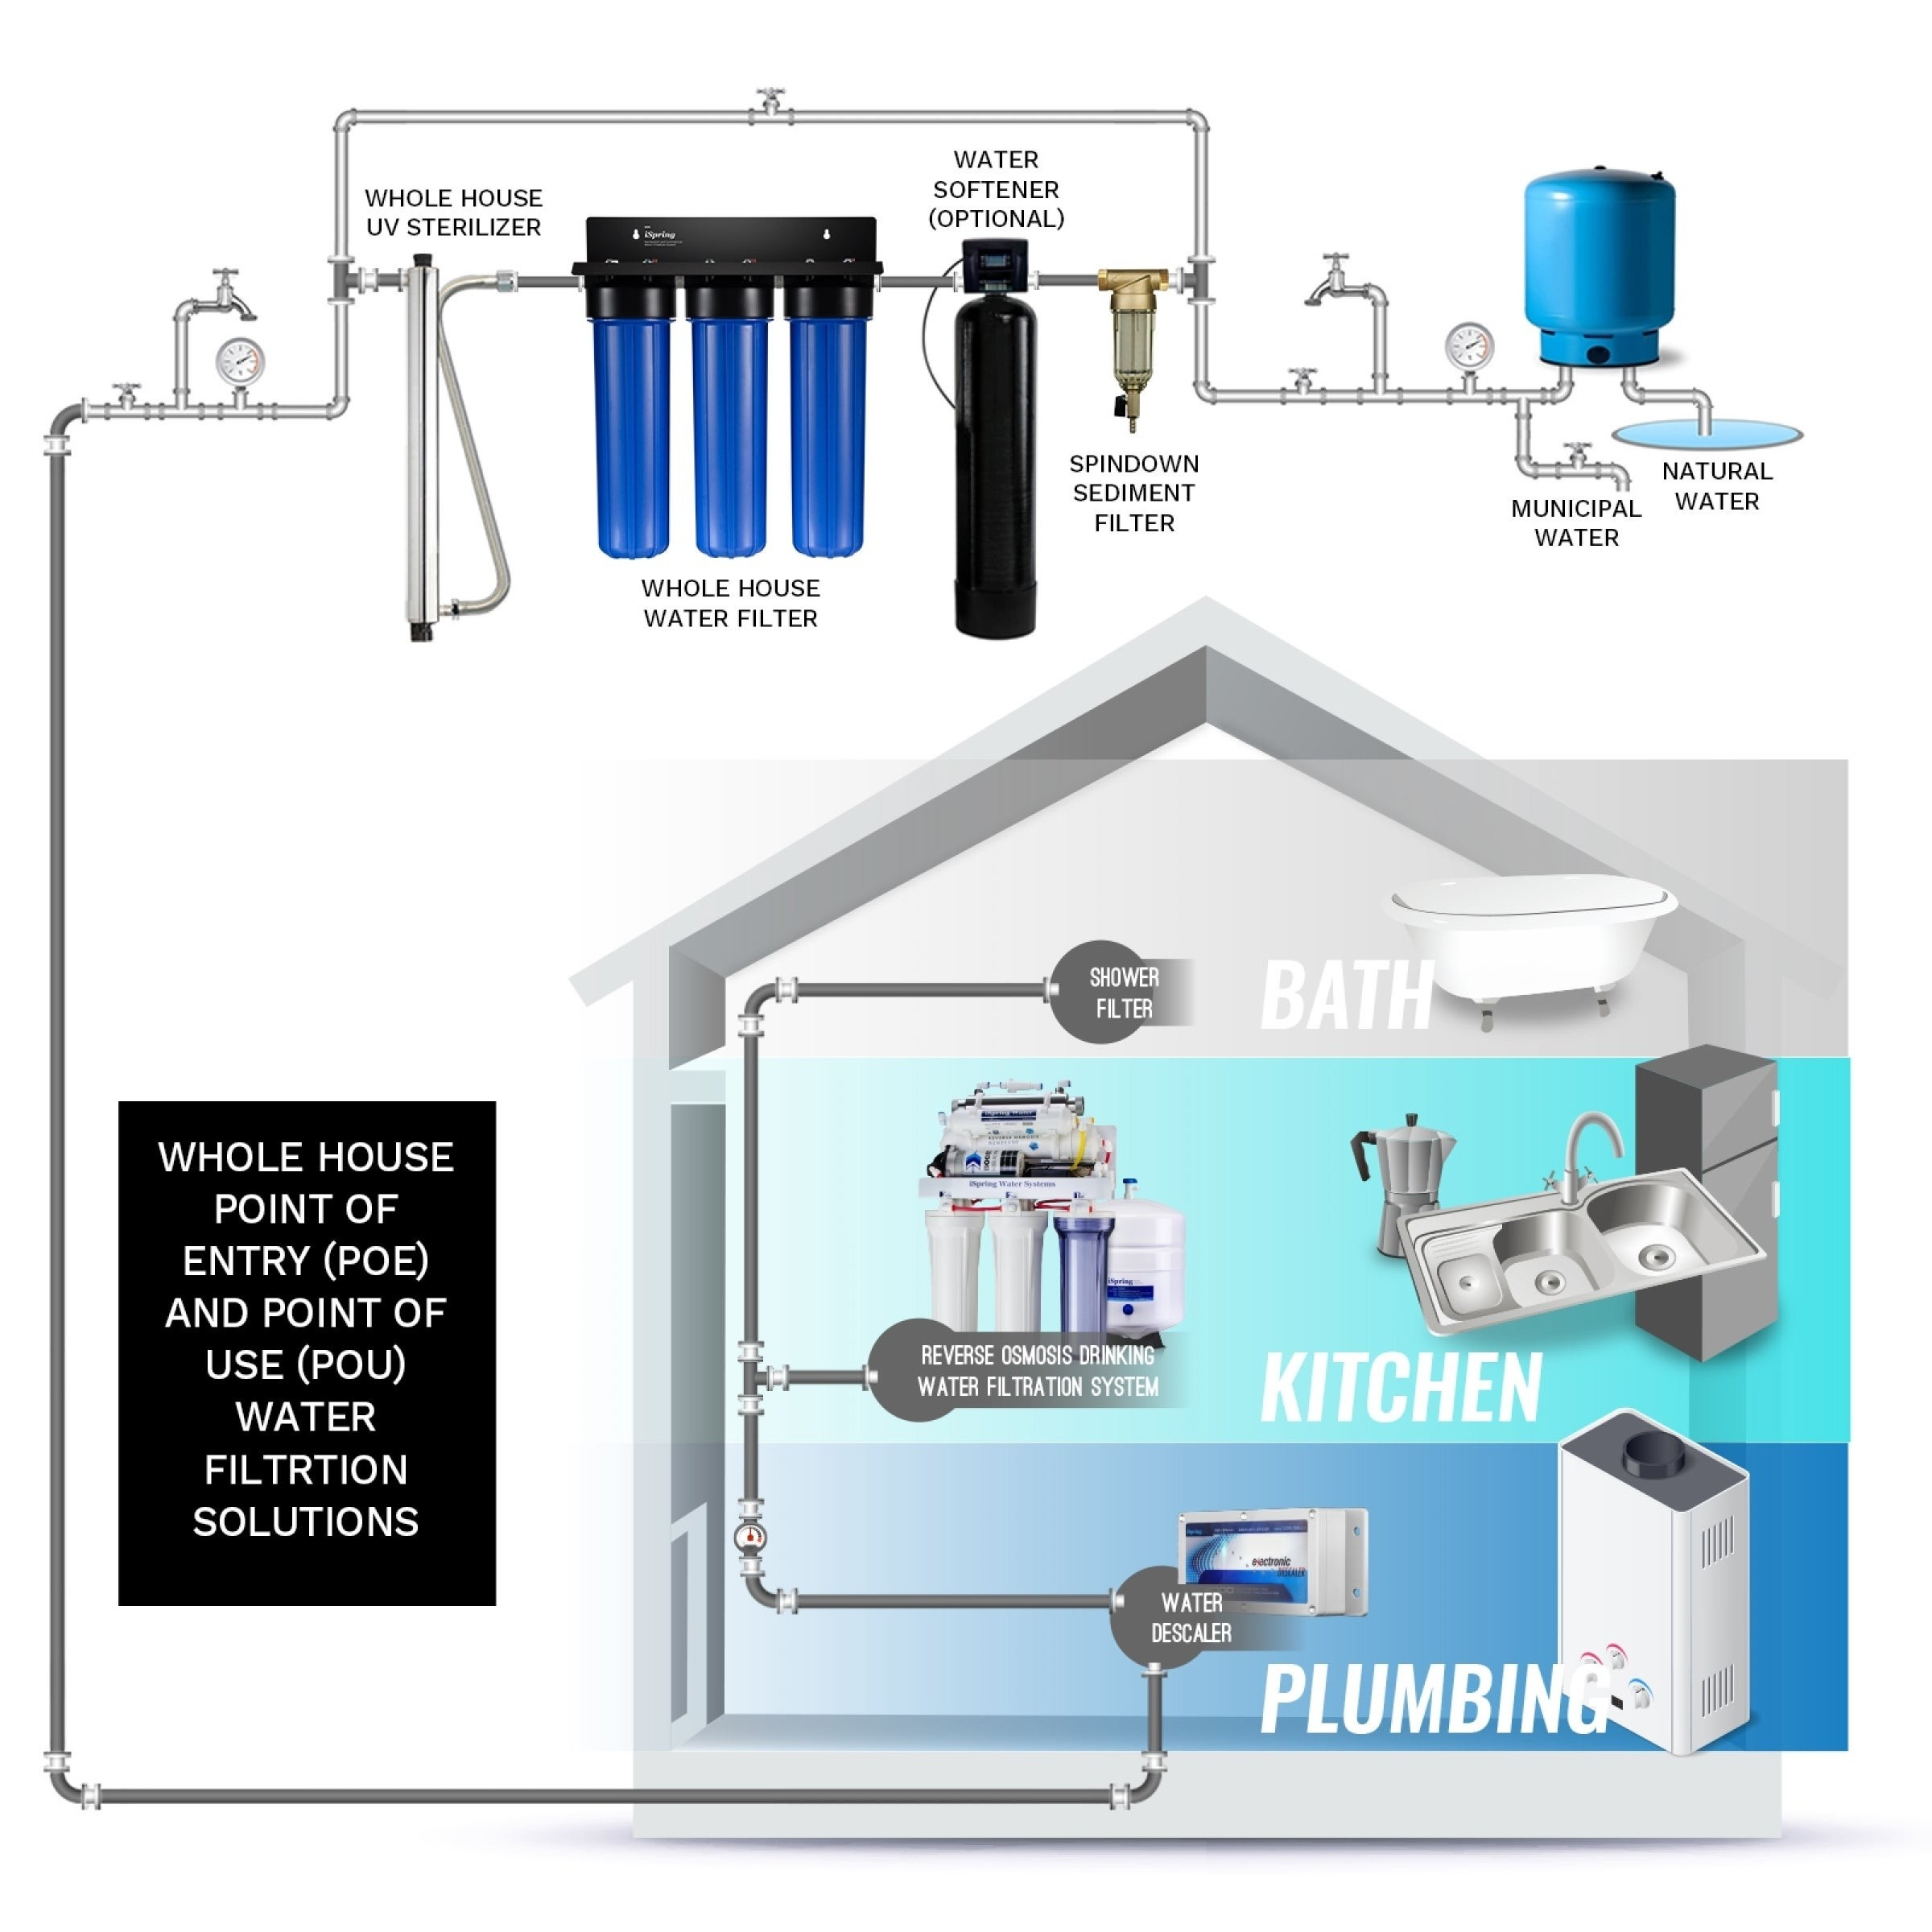 Whole House Water Filter supplier in UAE